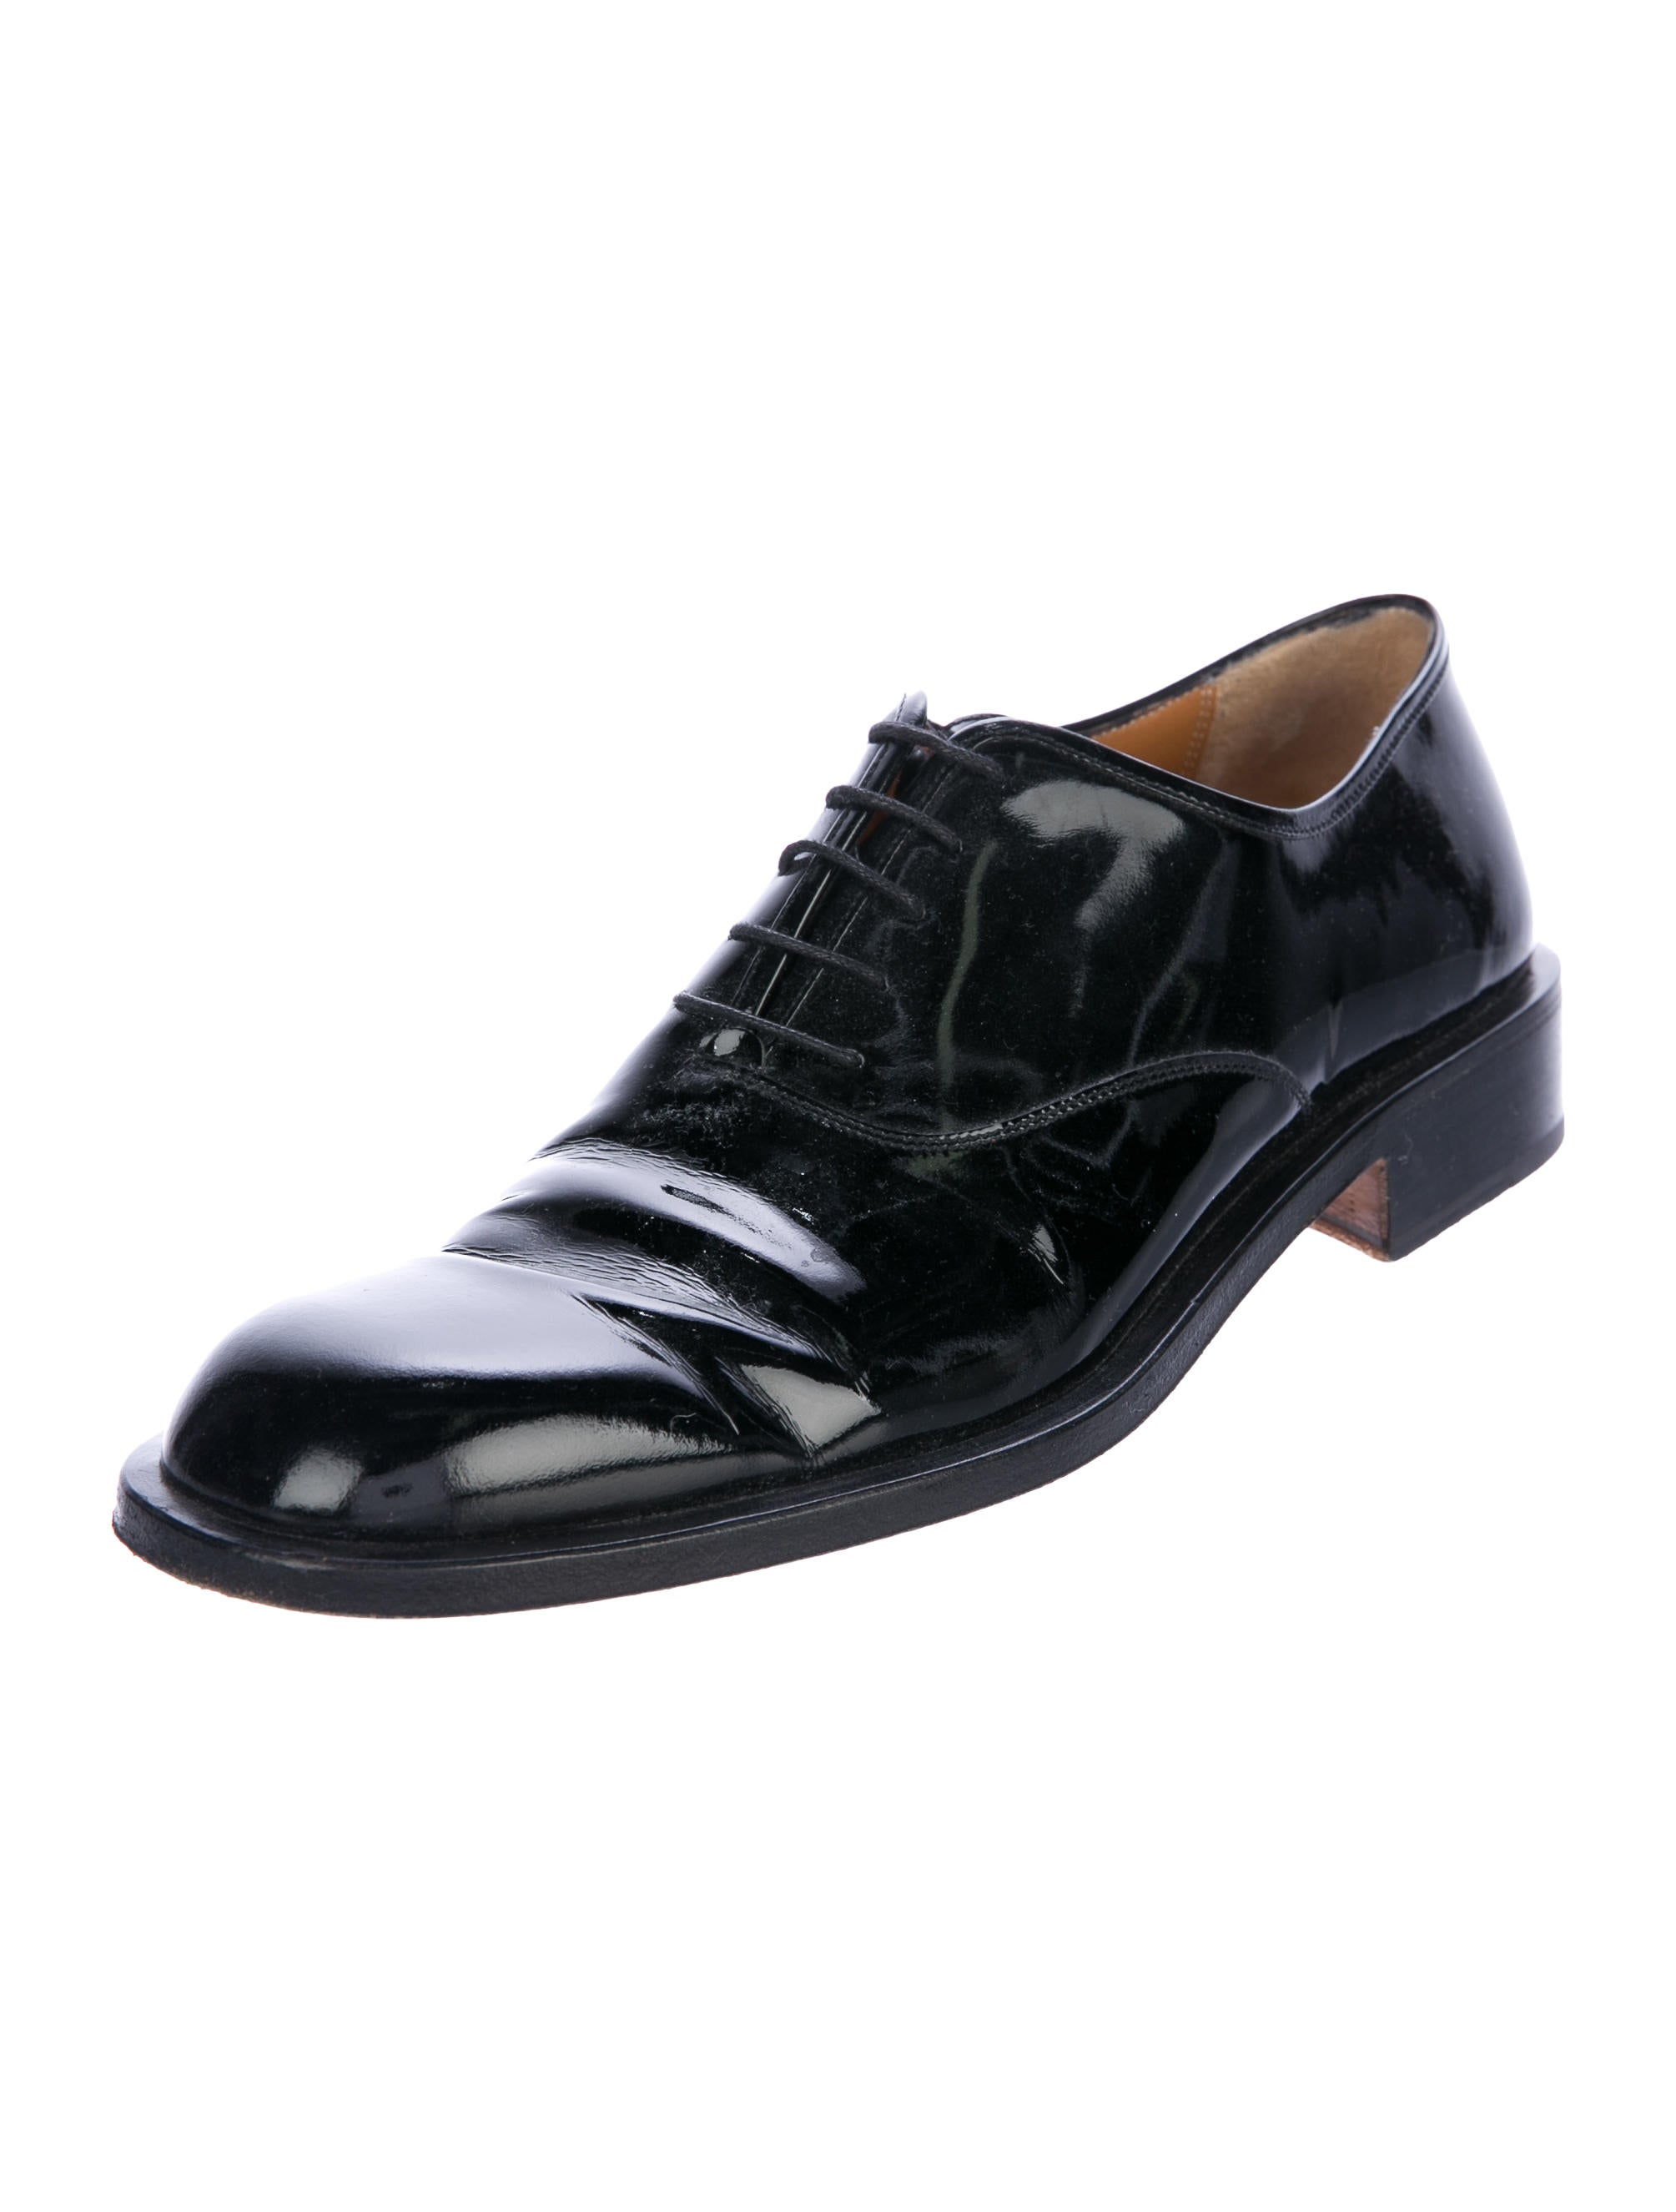 The Scarpe di Bianco™ Italian footwear collection was founded by Bill White in Di Bianco offers classic handmade men's shoes with a modern twist.